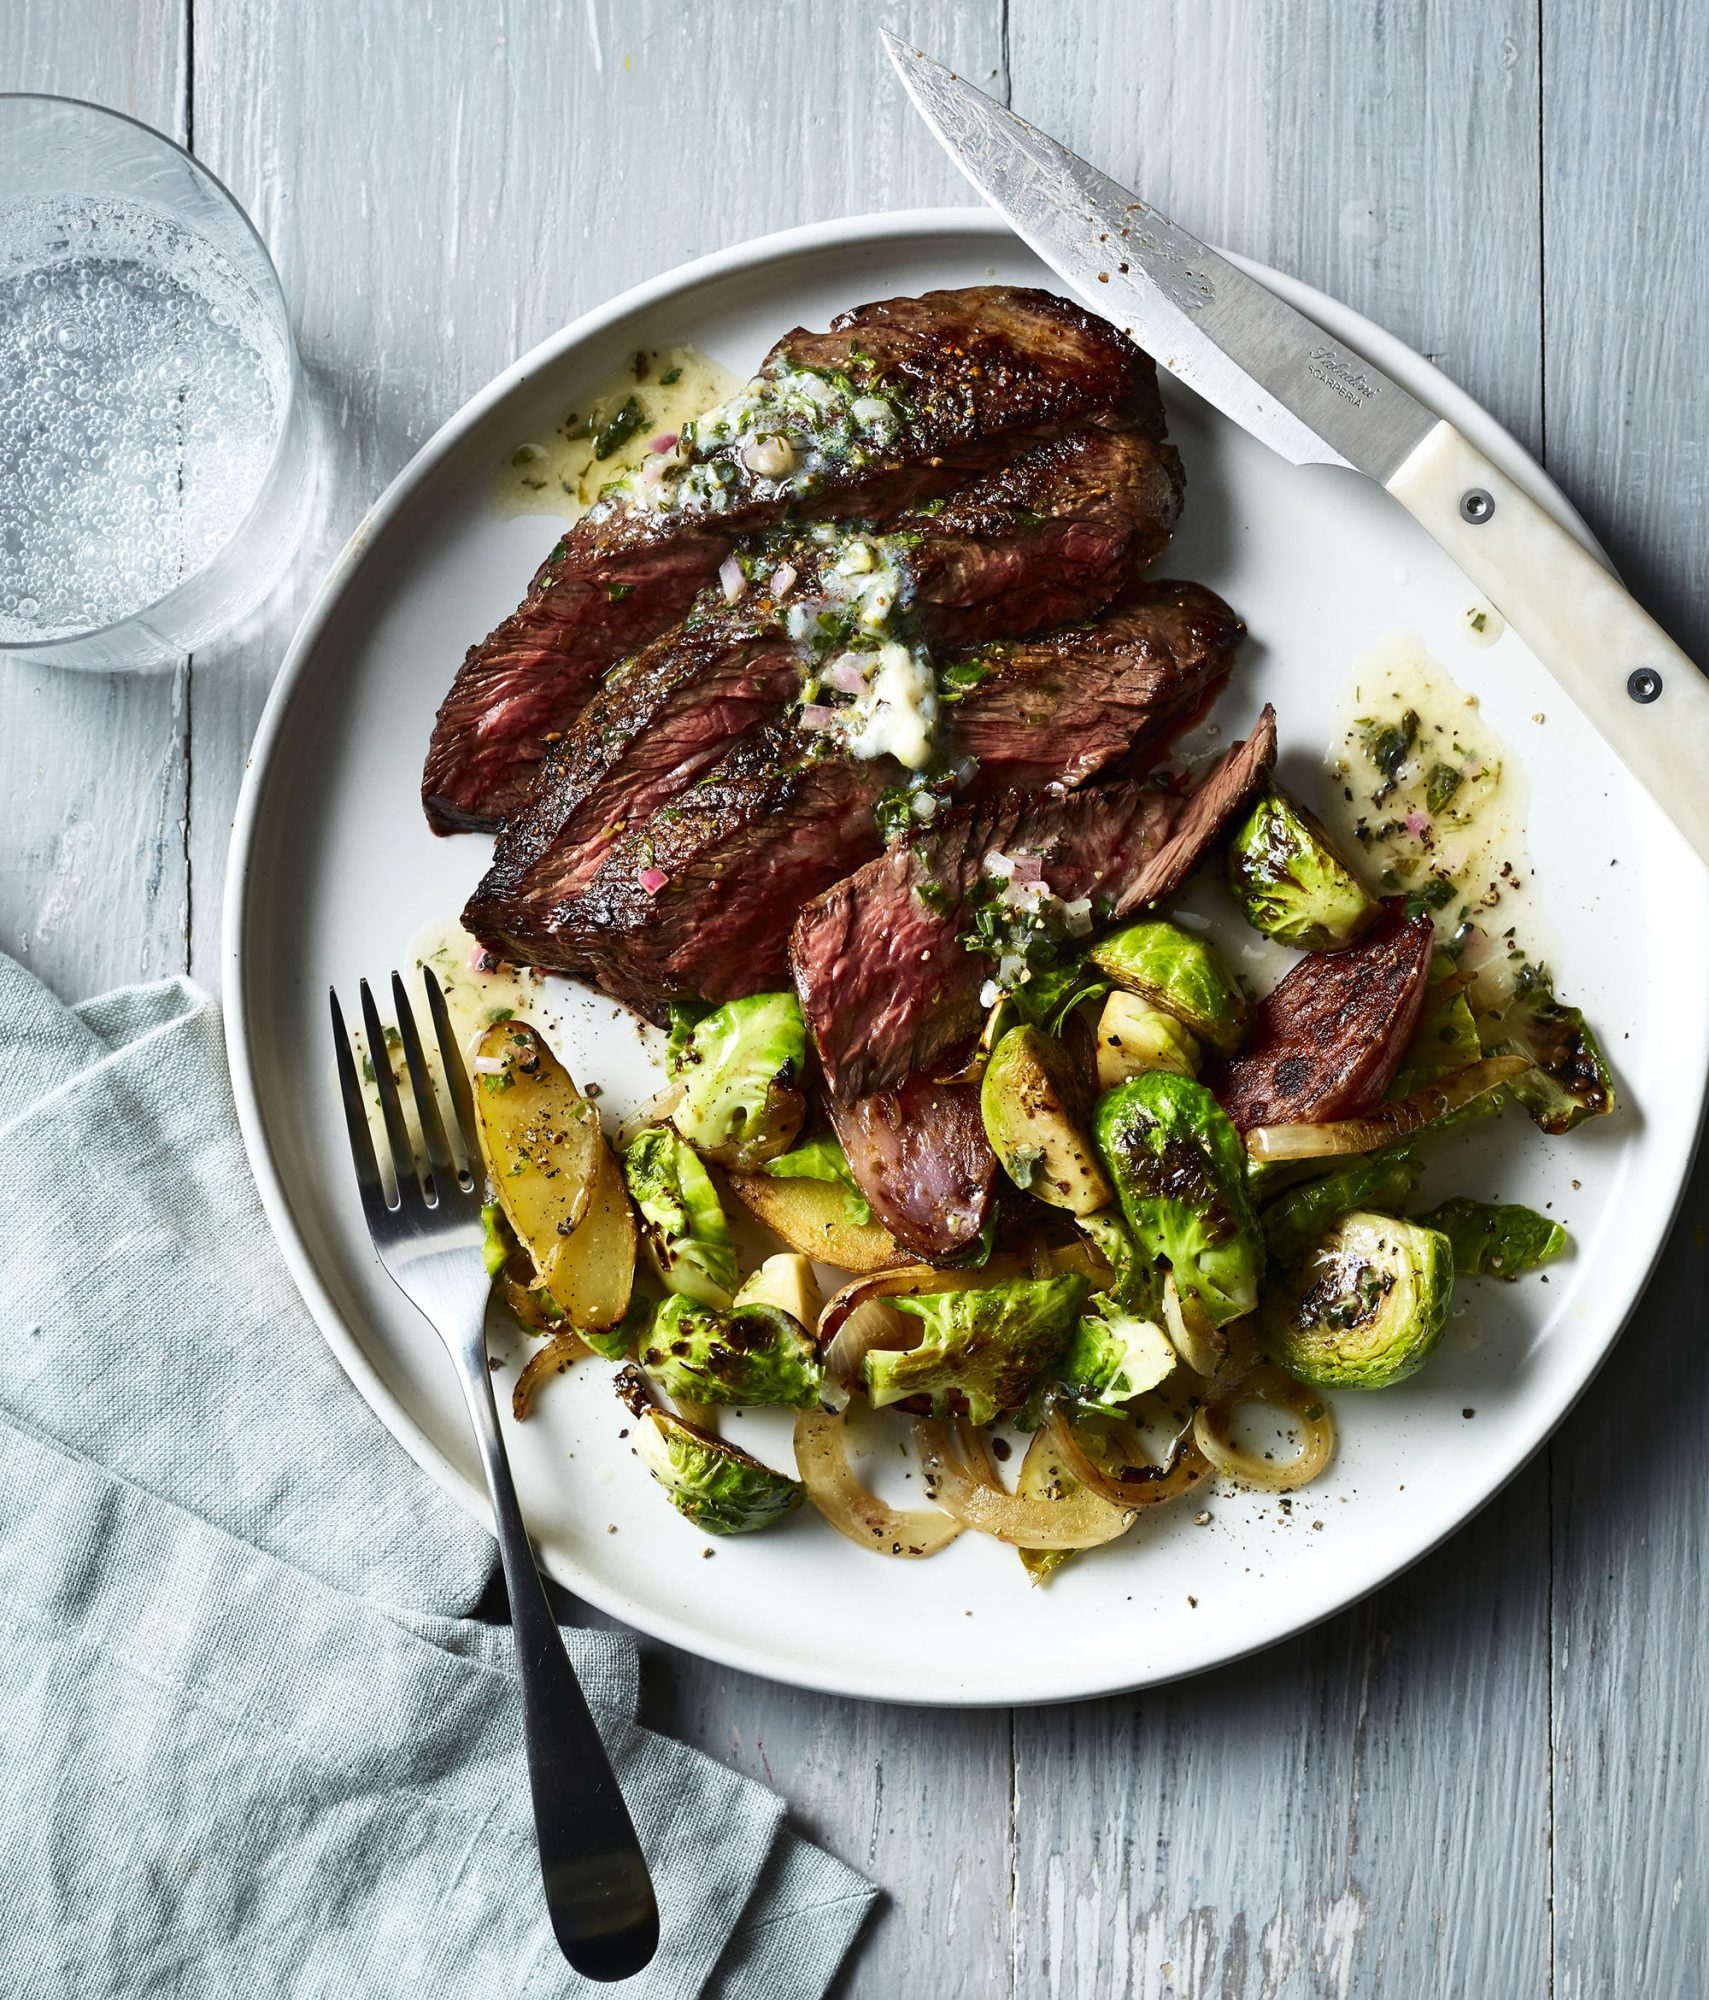 Pan Seared Hanger Steak with Brussels Sprouts, Potatoes, and Lemon-Herb Butter image